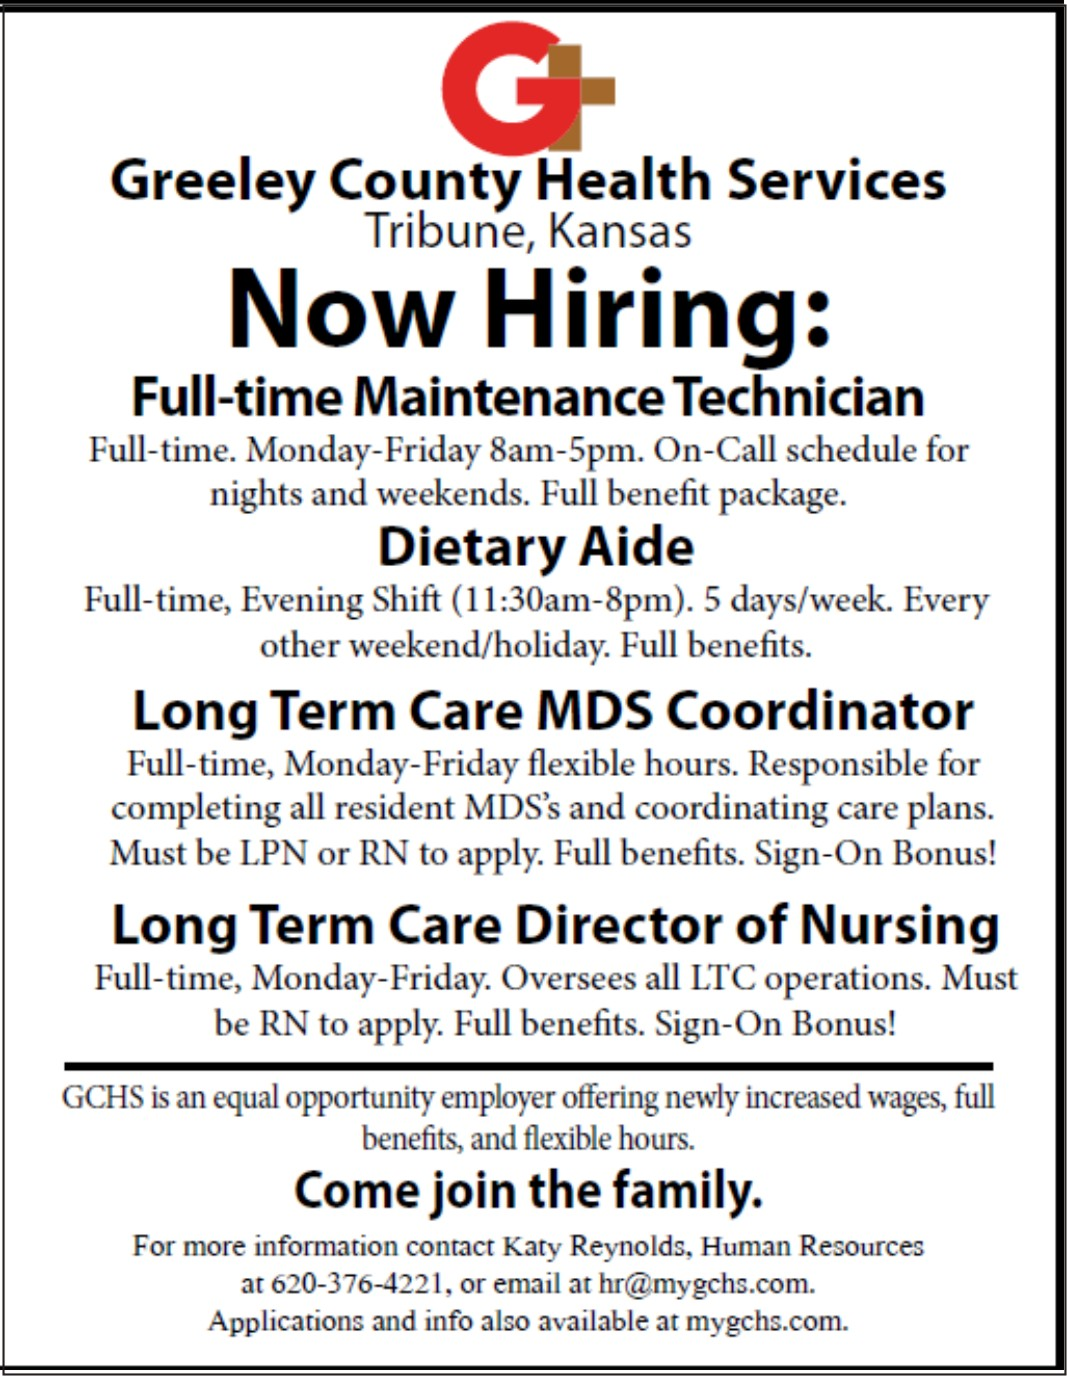 ADV - Greeley County Health Services - Now Hiring - August 11, 2017